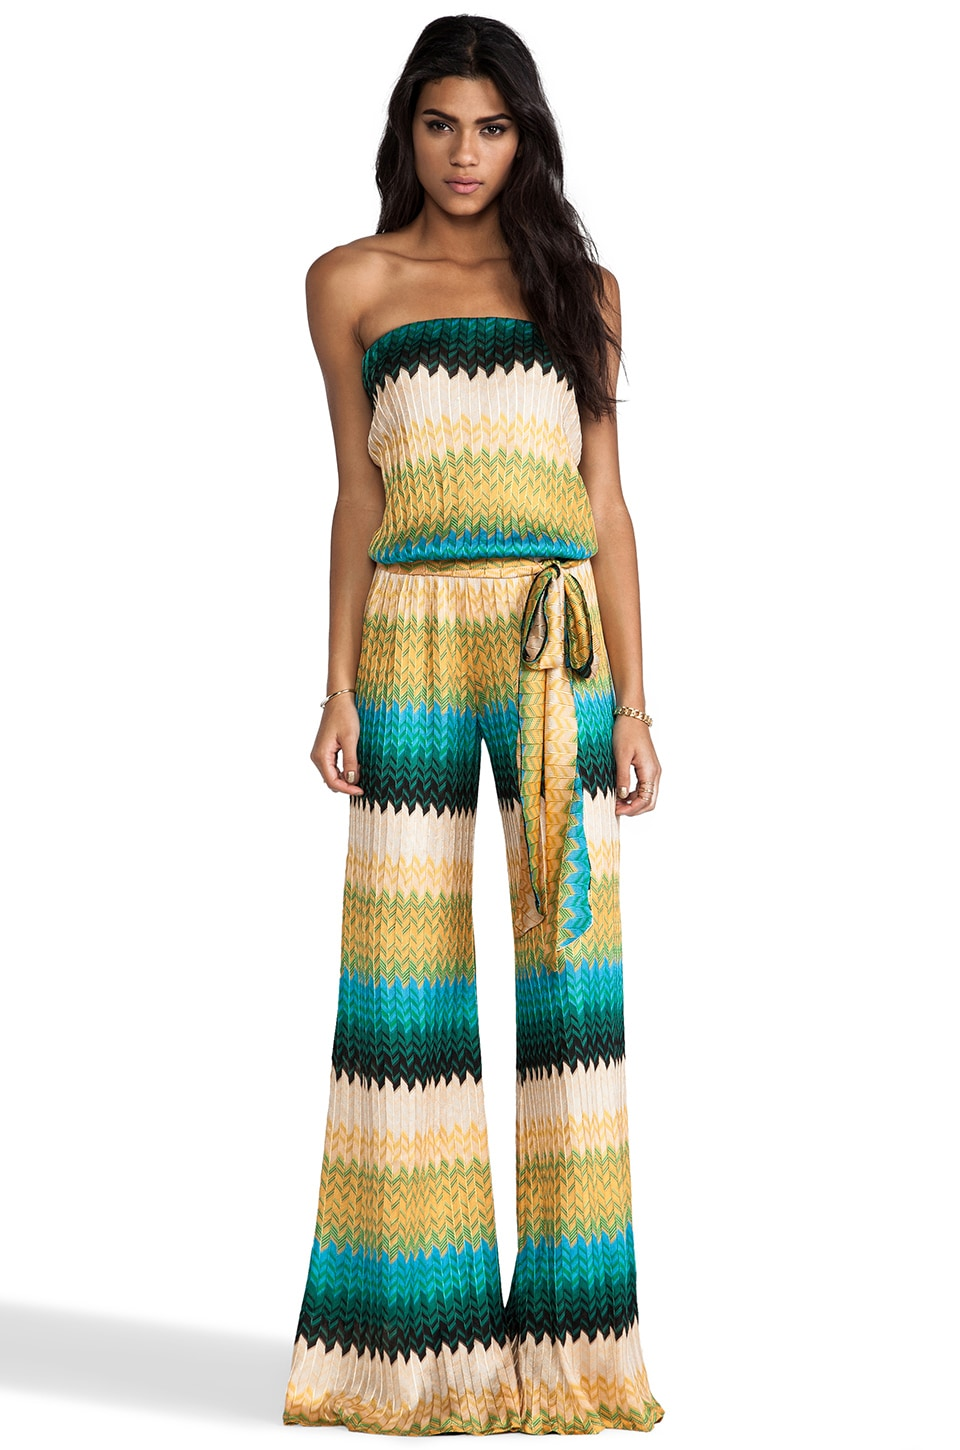 Alexis Lola Strapless Jumpsuit in Geometric Knit